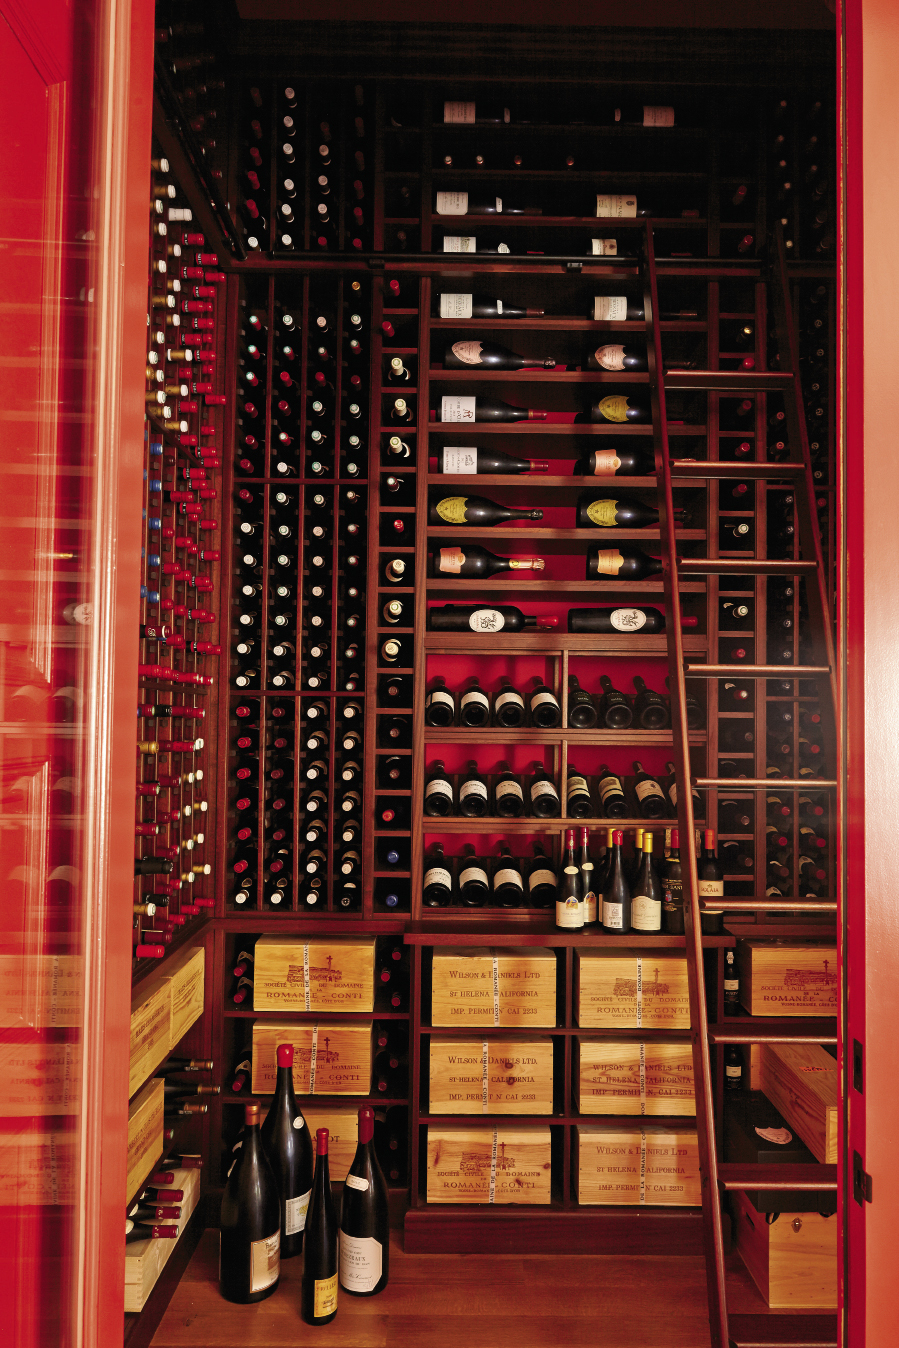 Stephen's prized wine collection is both showcased and handy.